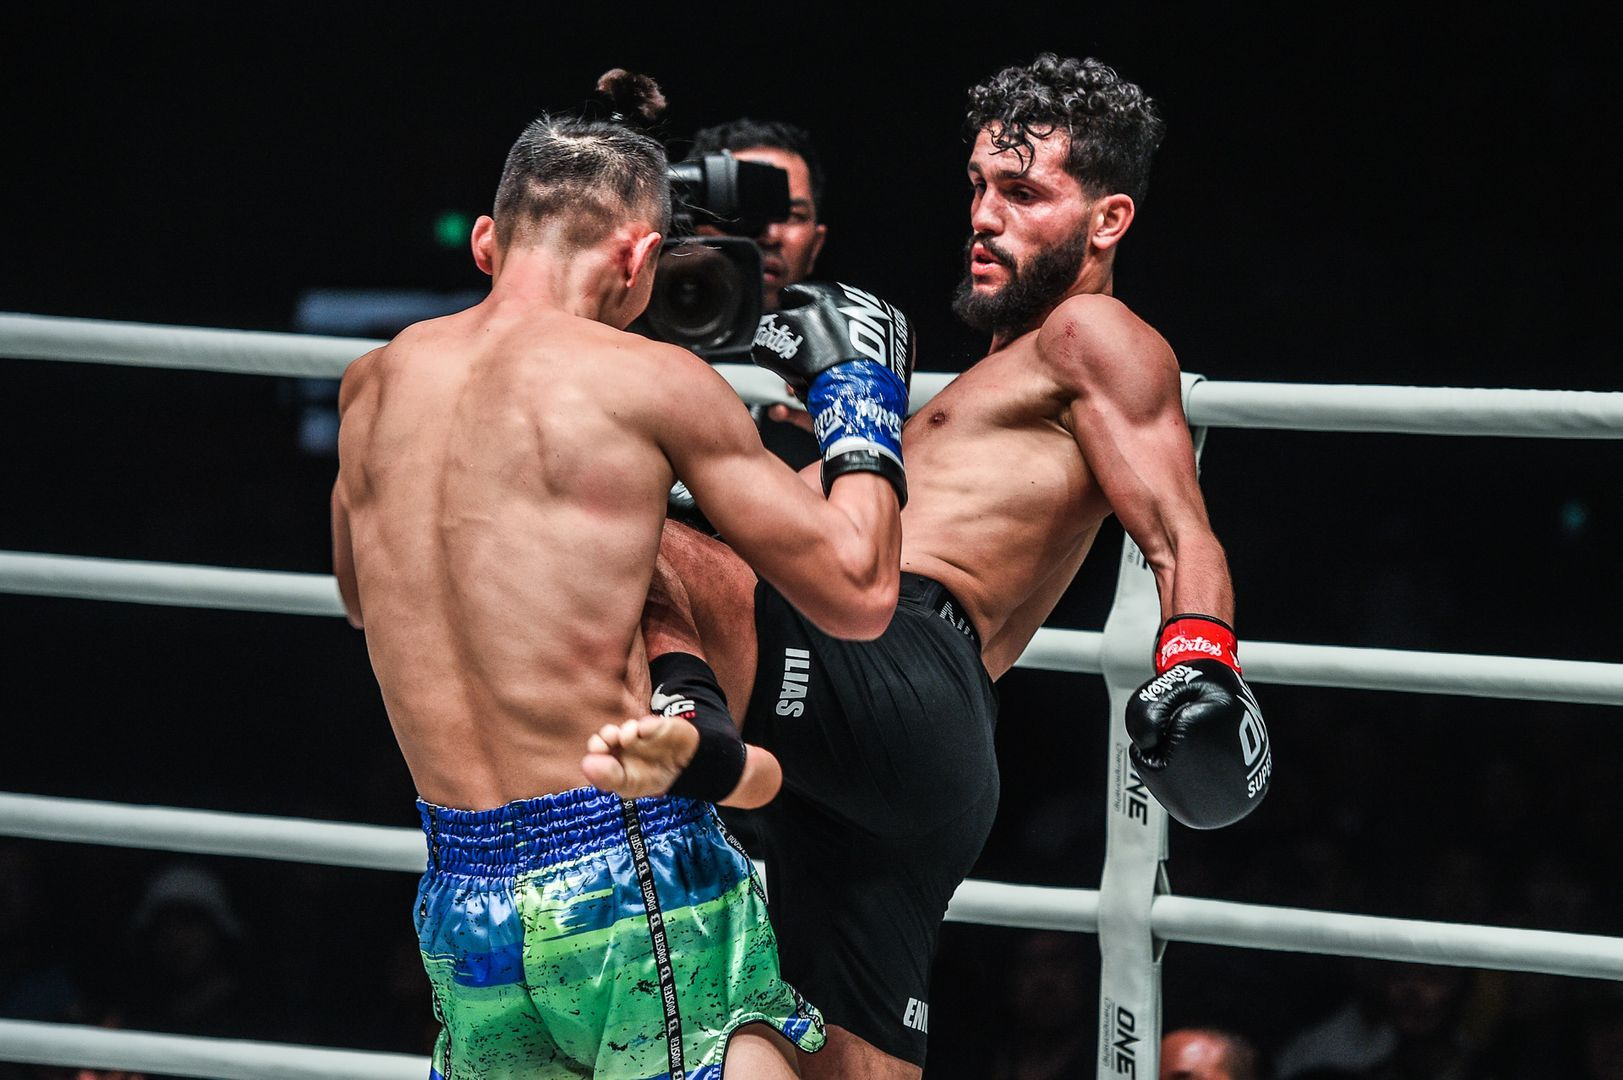 Ilias Ennahachi defeats Wang Wenfeng at ONE AGE OF DRAGONS in Beijing